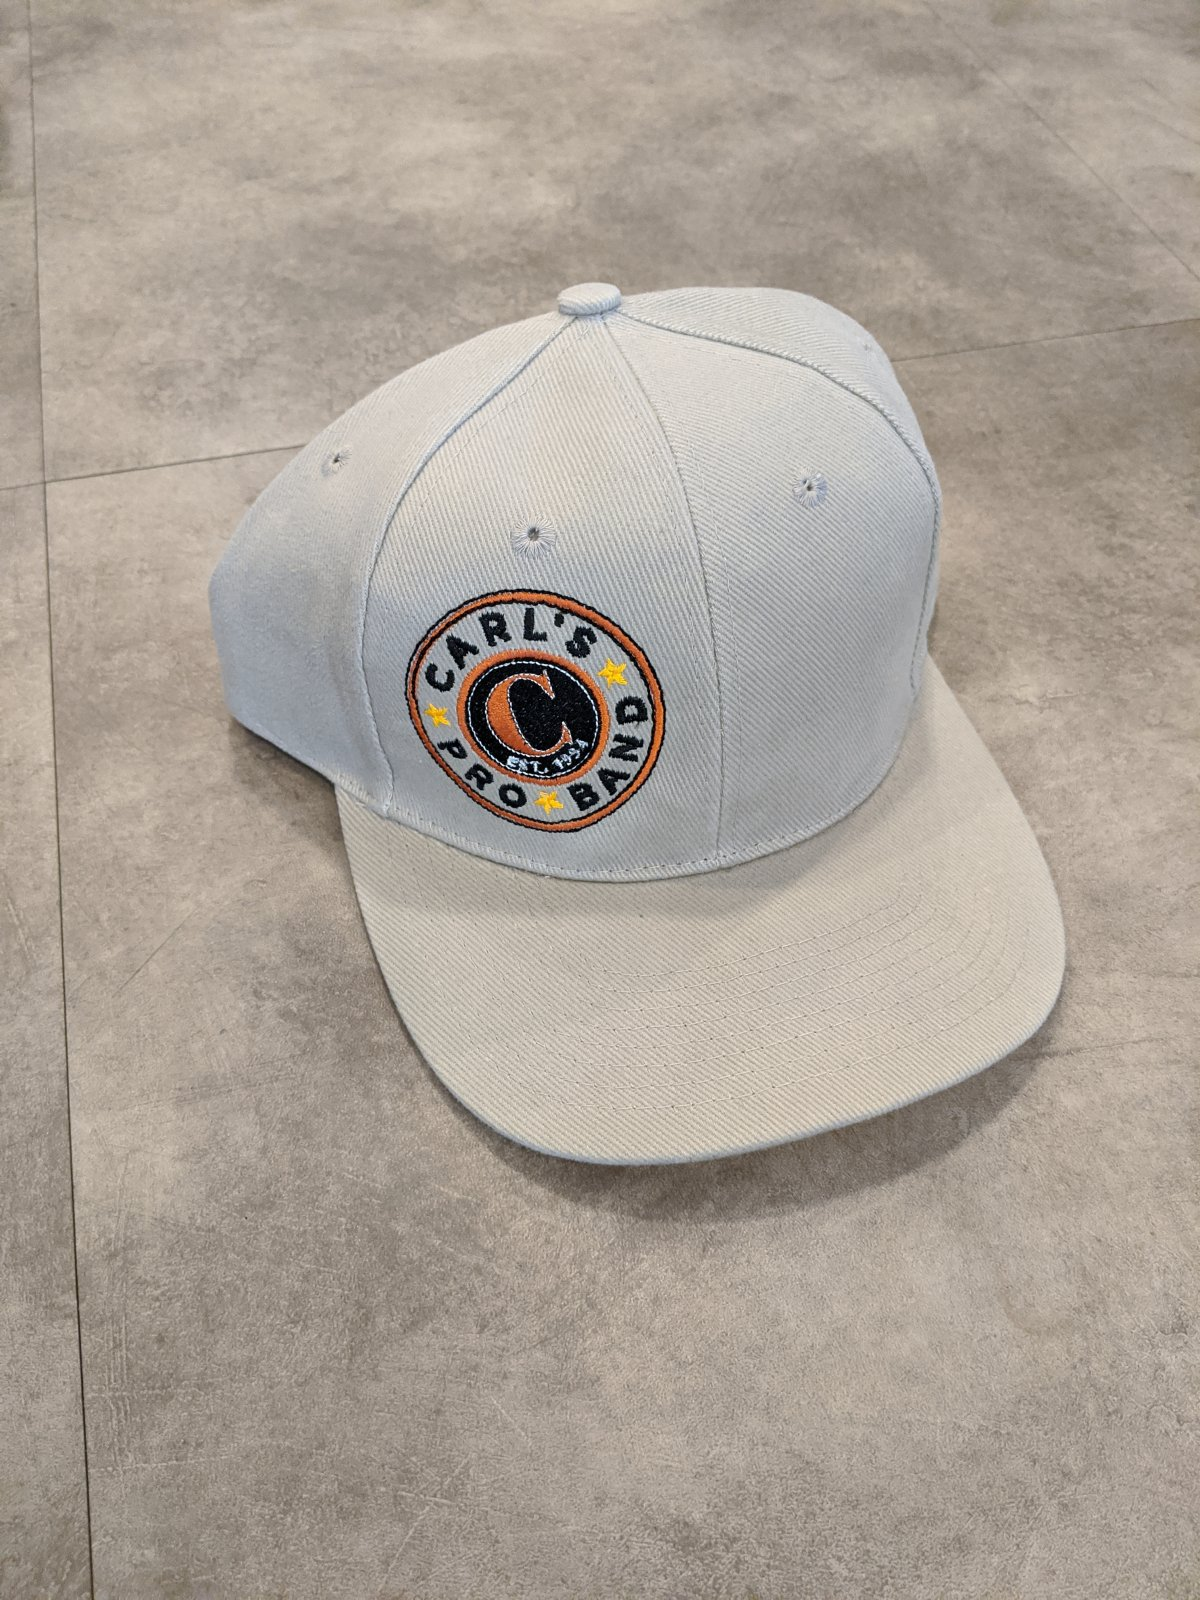 CPB Tan Hat